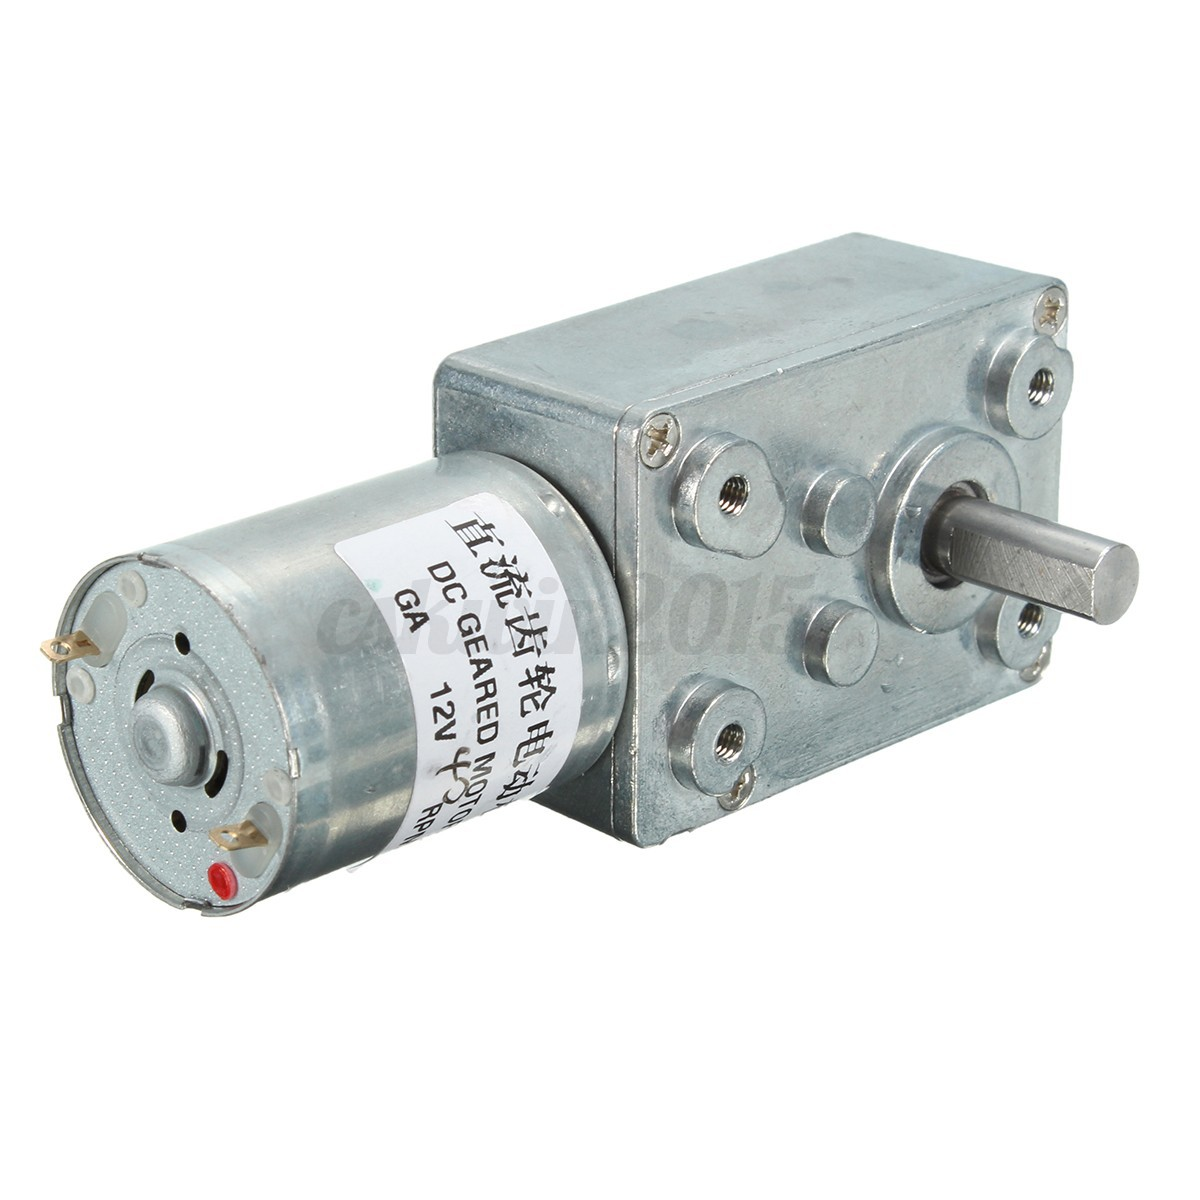 12v 40rpm Torque Turbo Worm Gear Box Geared Electric Drive